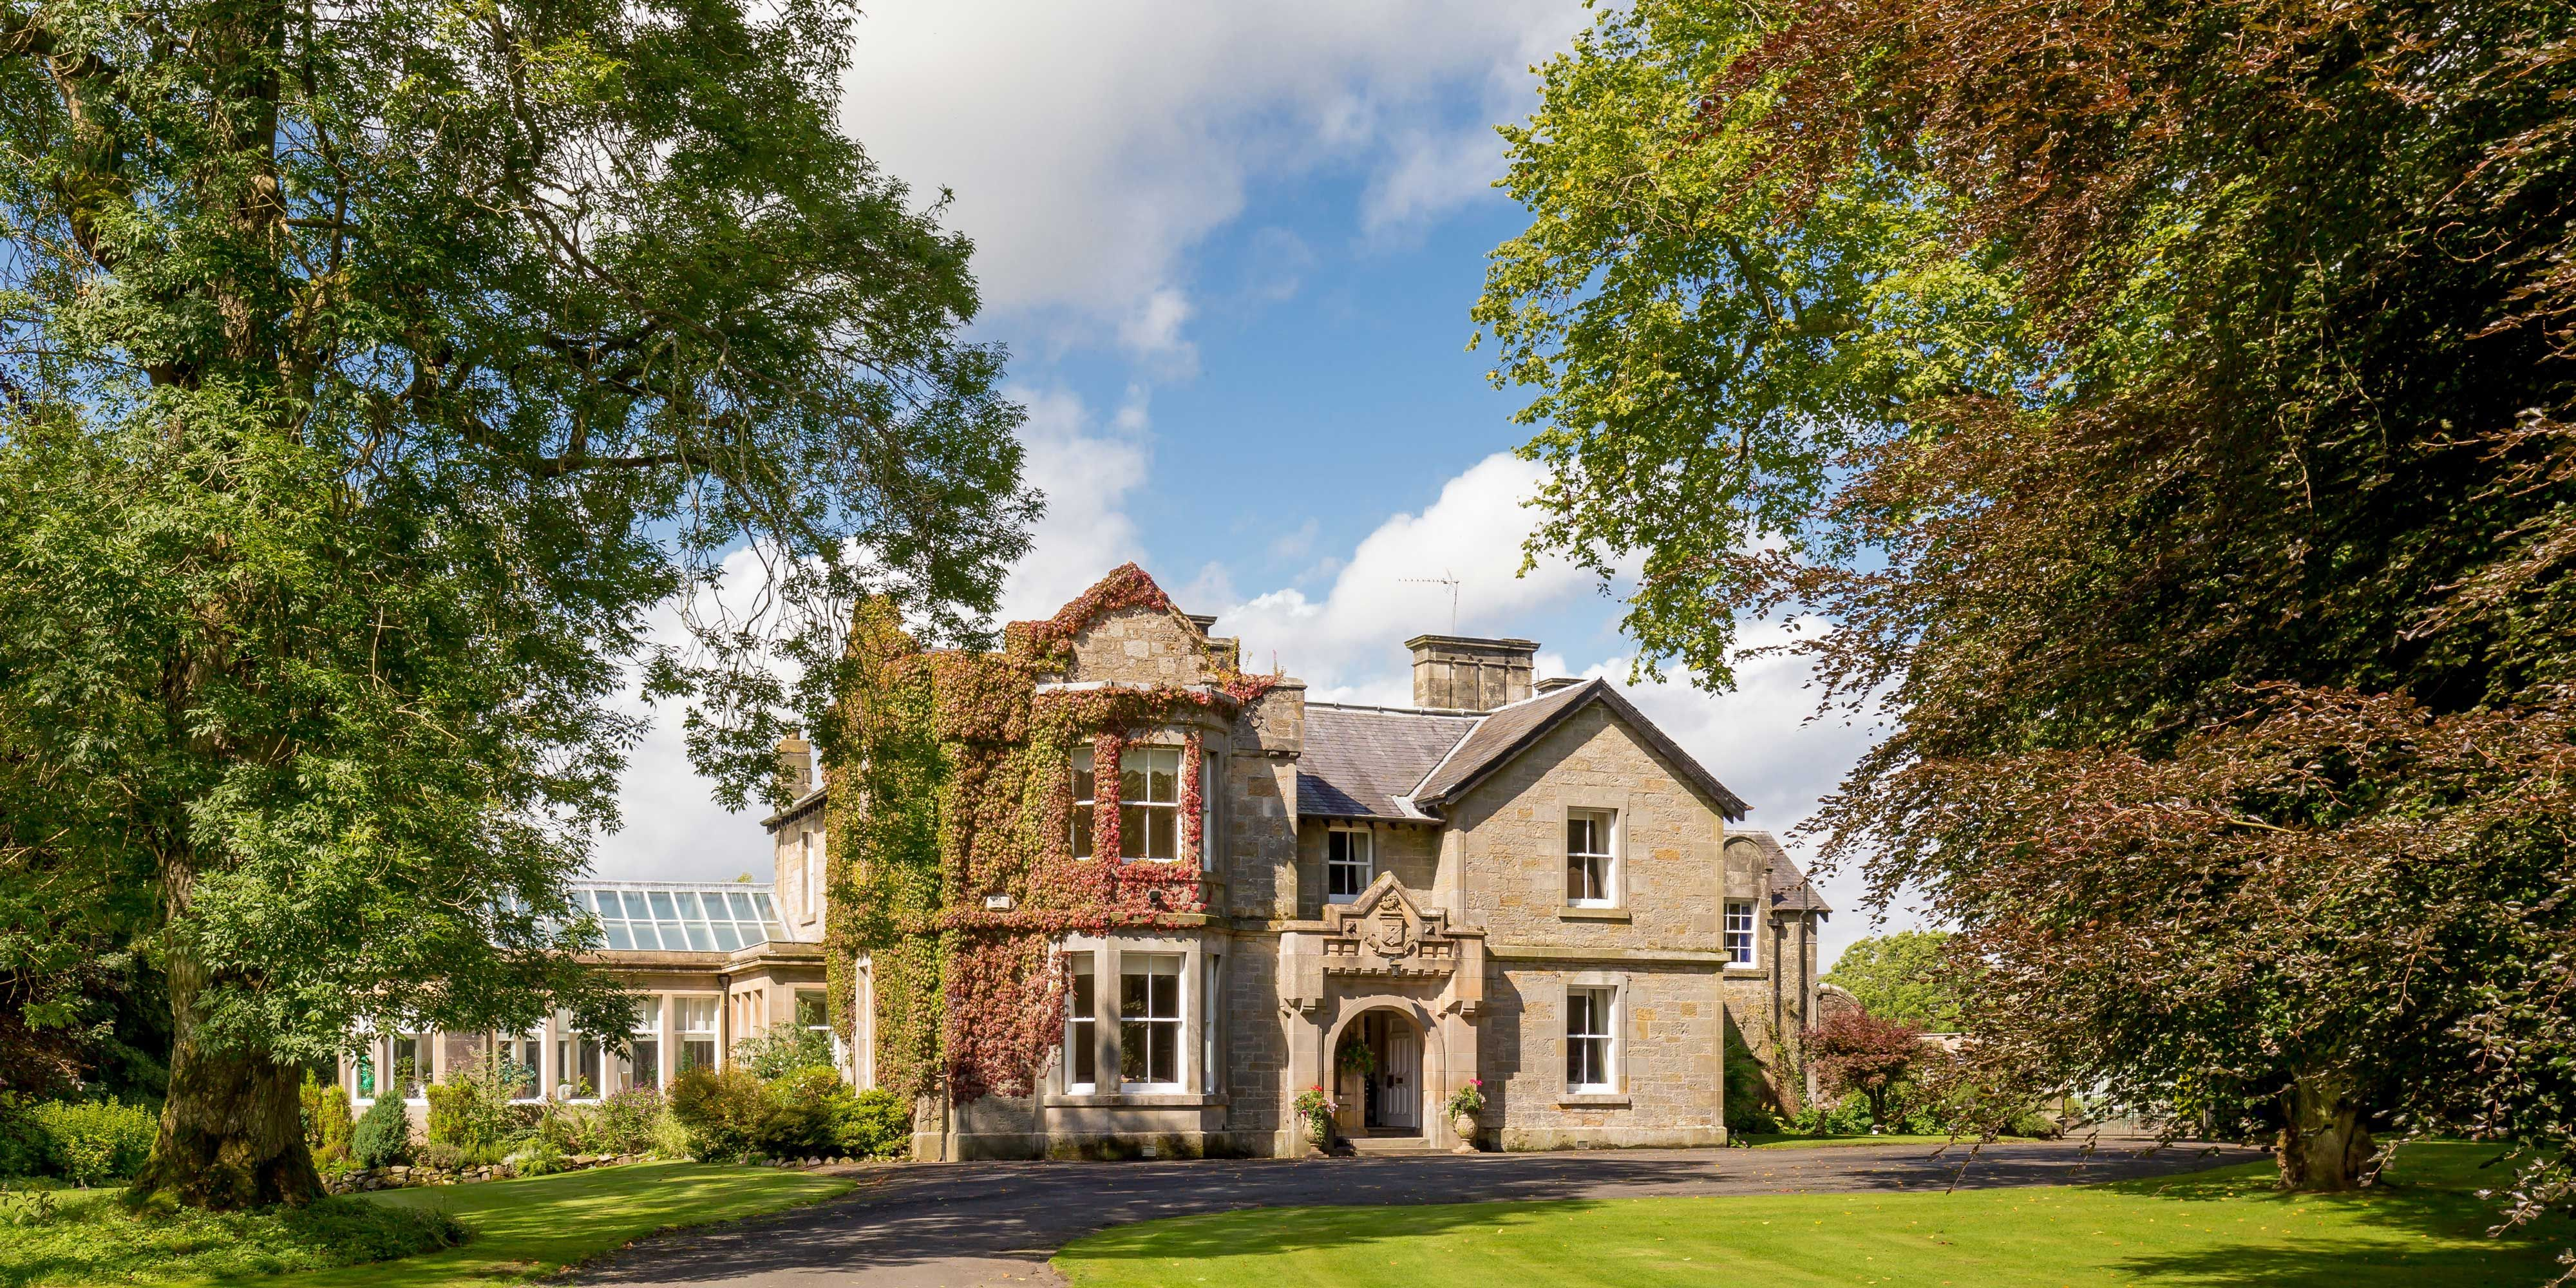 The Countryside Property With An Impressive Plot Of Land